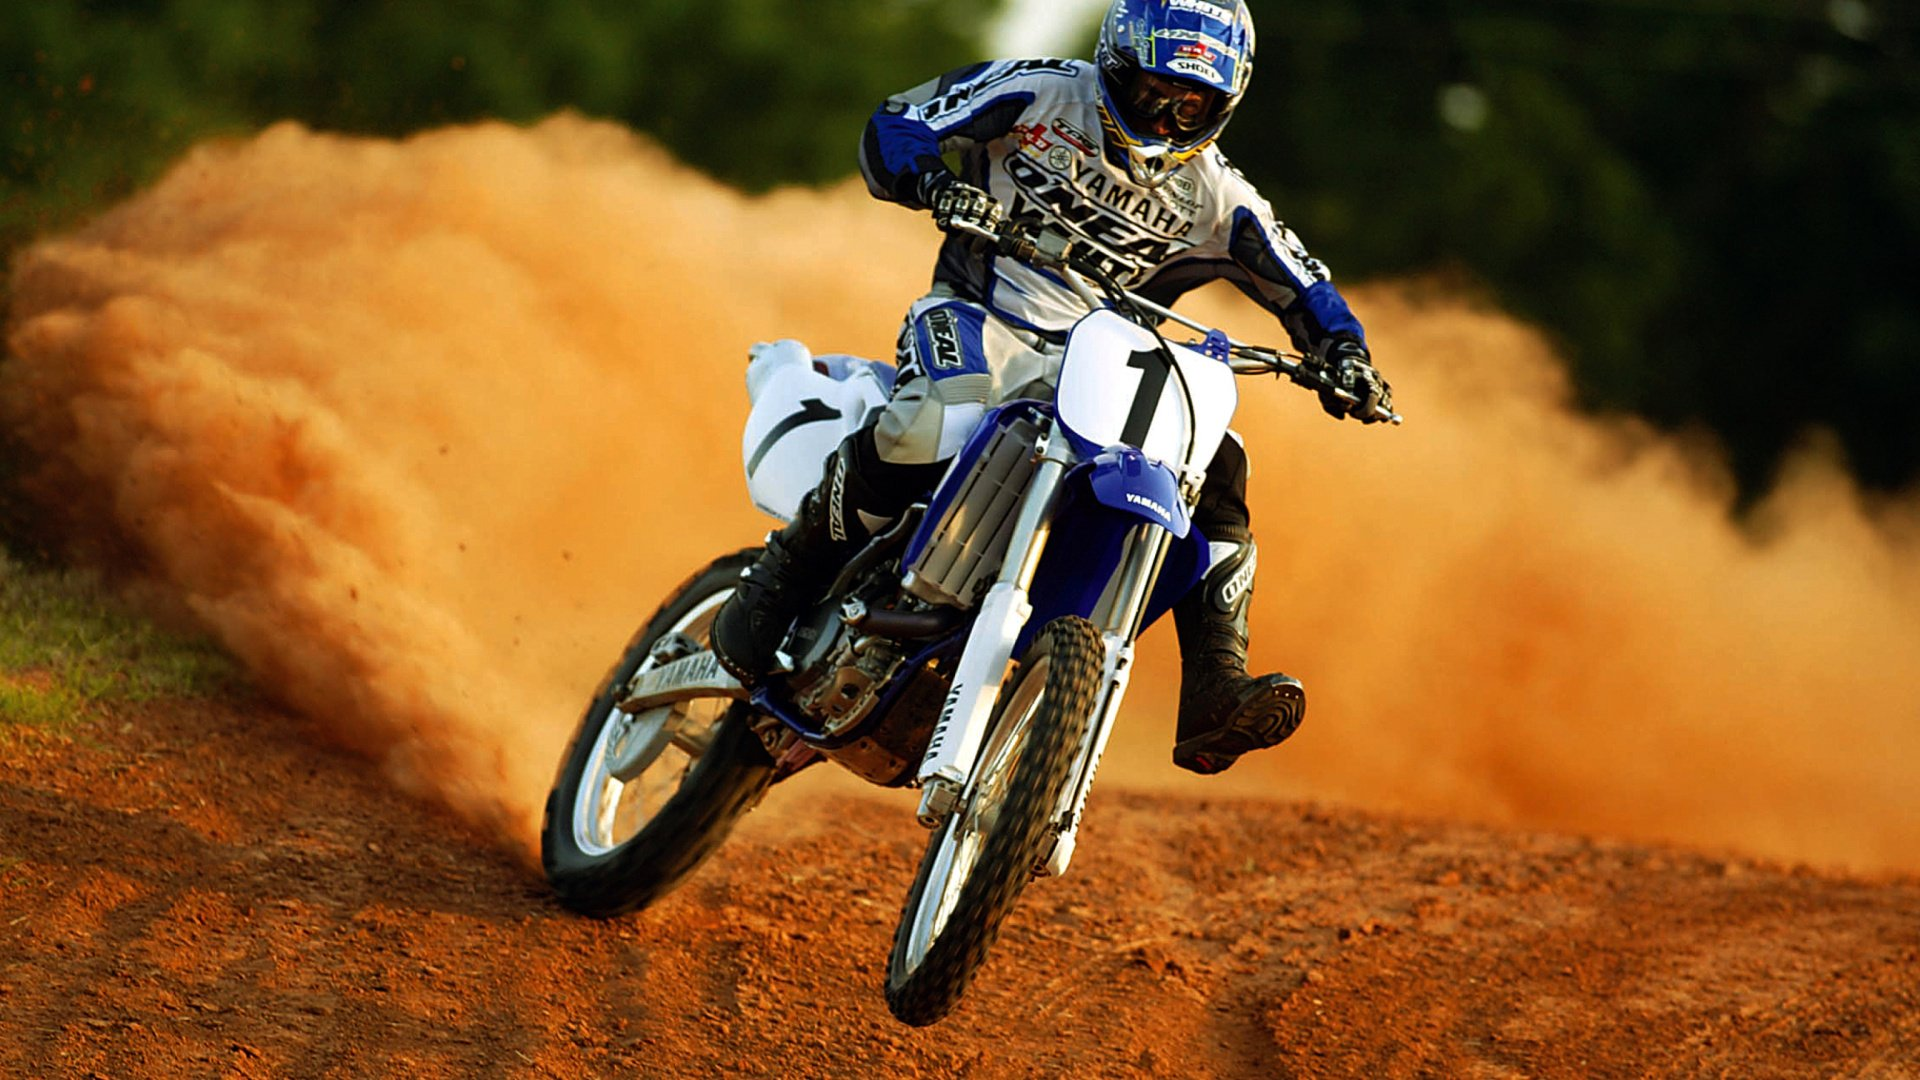 motocross screensavers wallpapers wallpapersafari. Black Bedroom Furniture Sets. Home Design Ideas